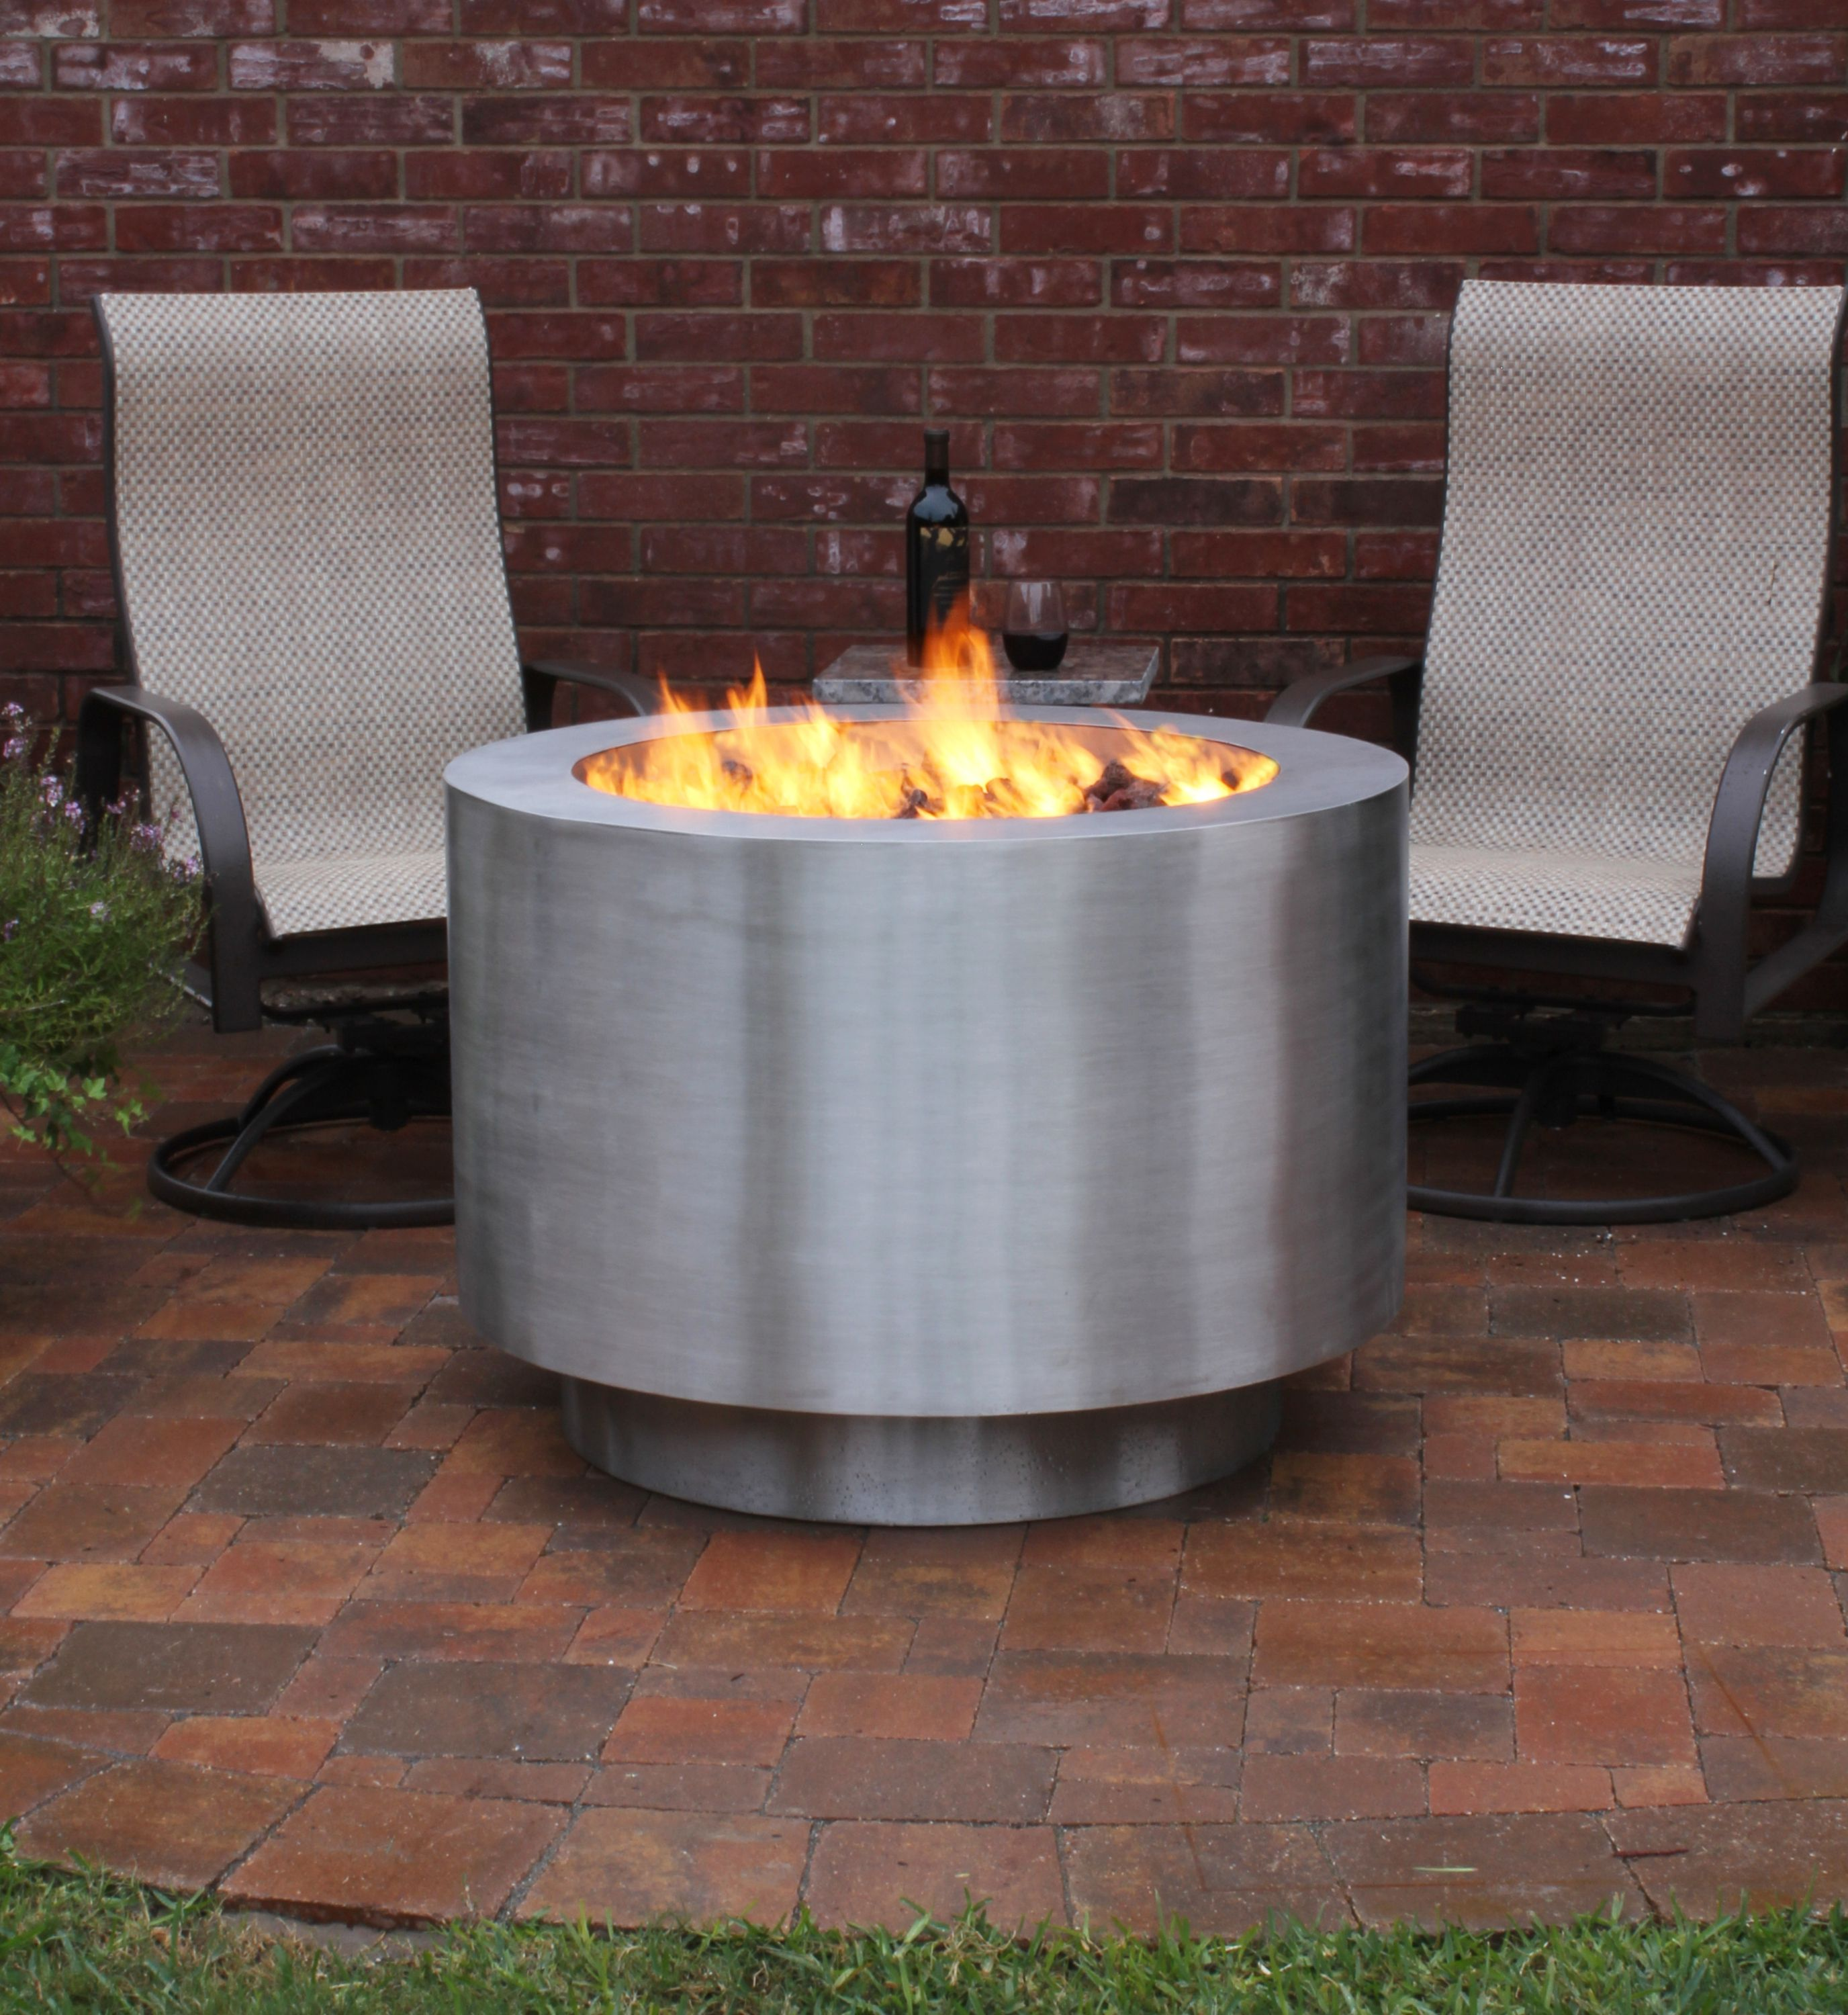 38 round stainless steel hidden lp tank fire pit available in wood